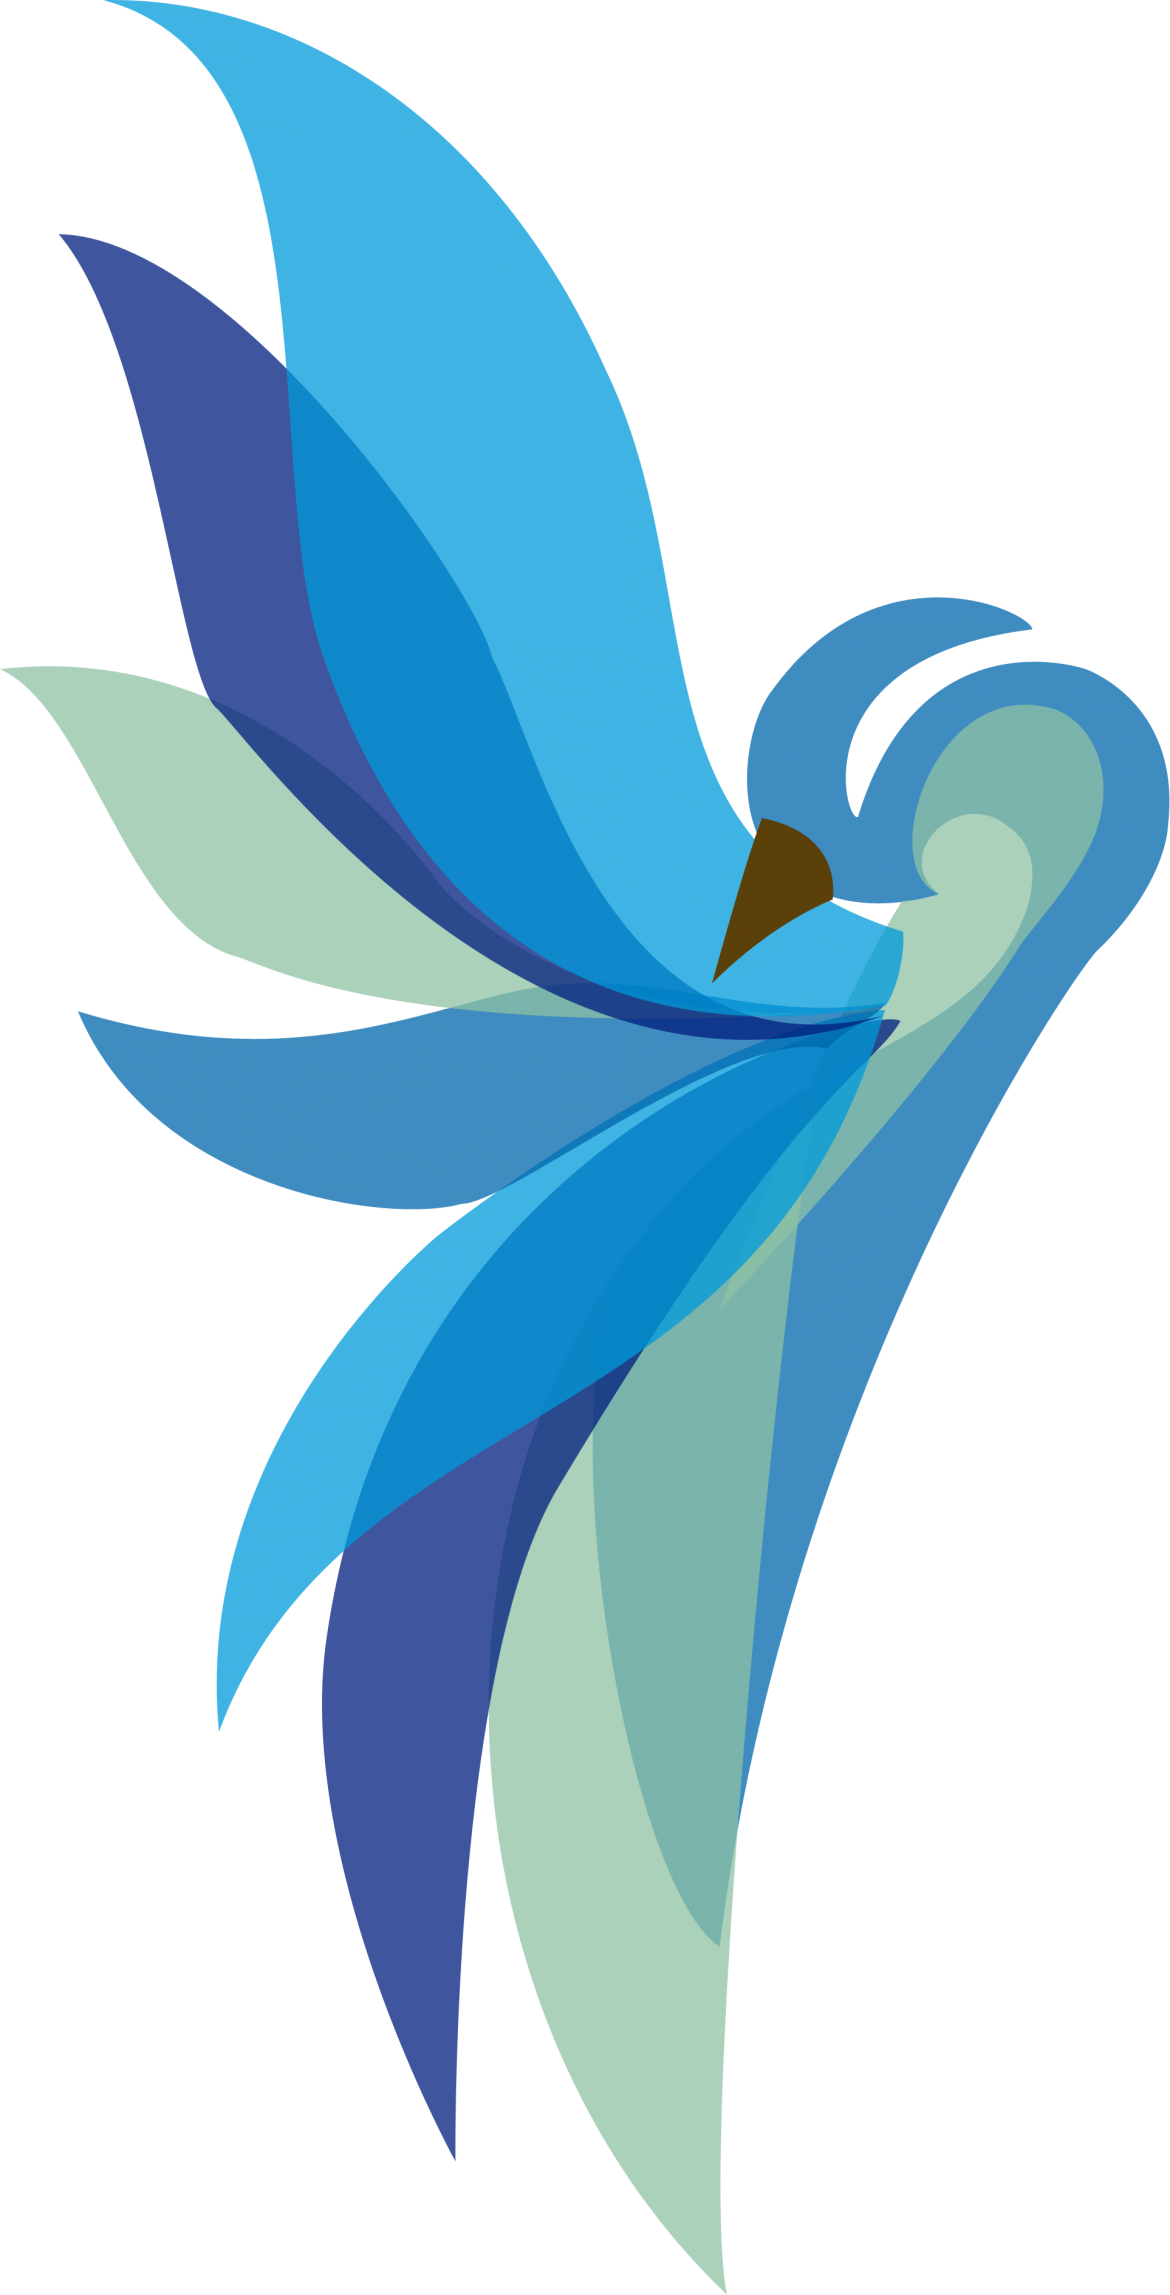 Logo-SmBird-REVISED.png